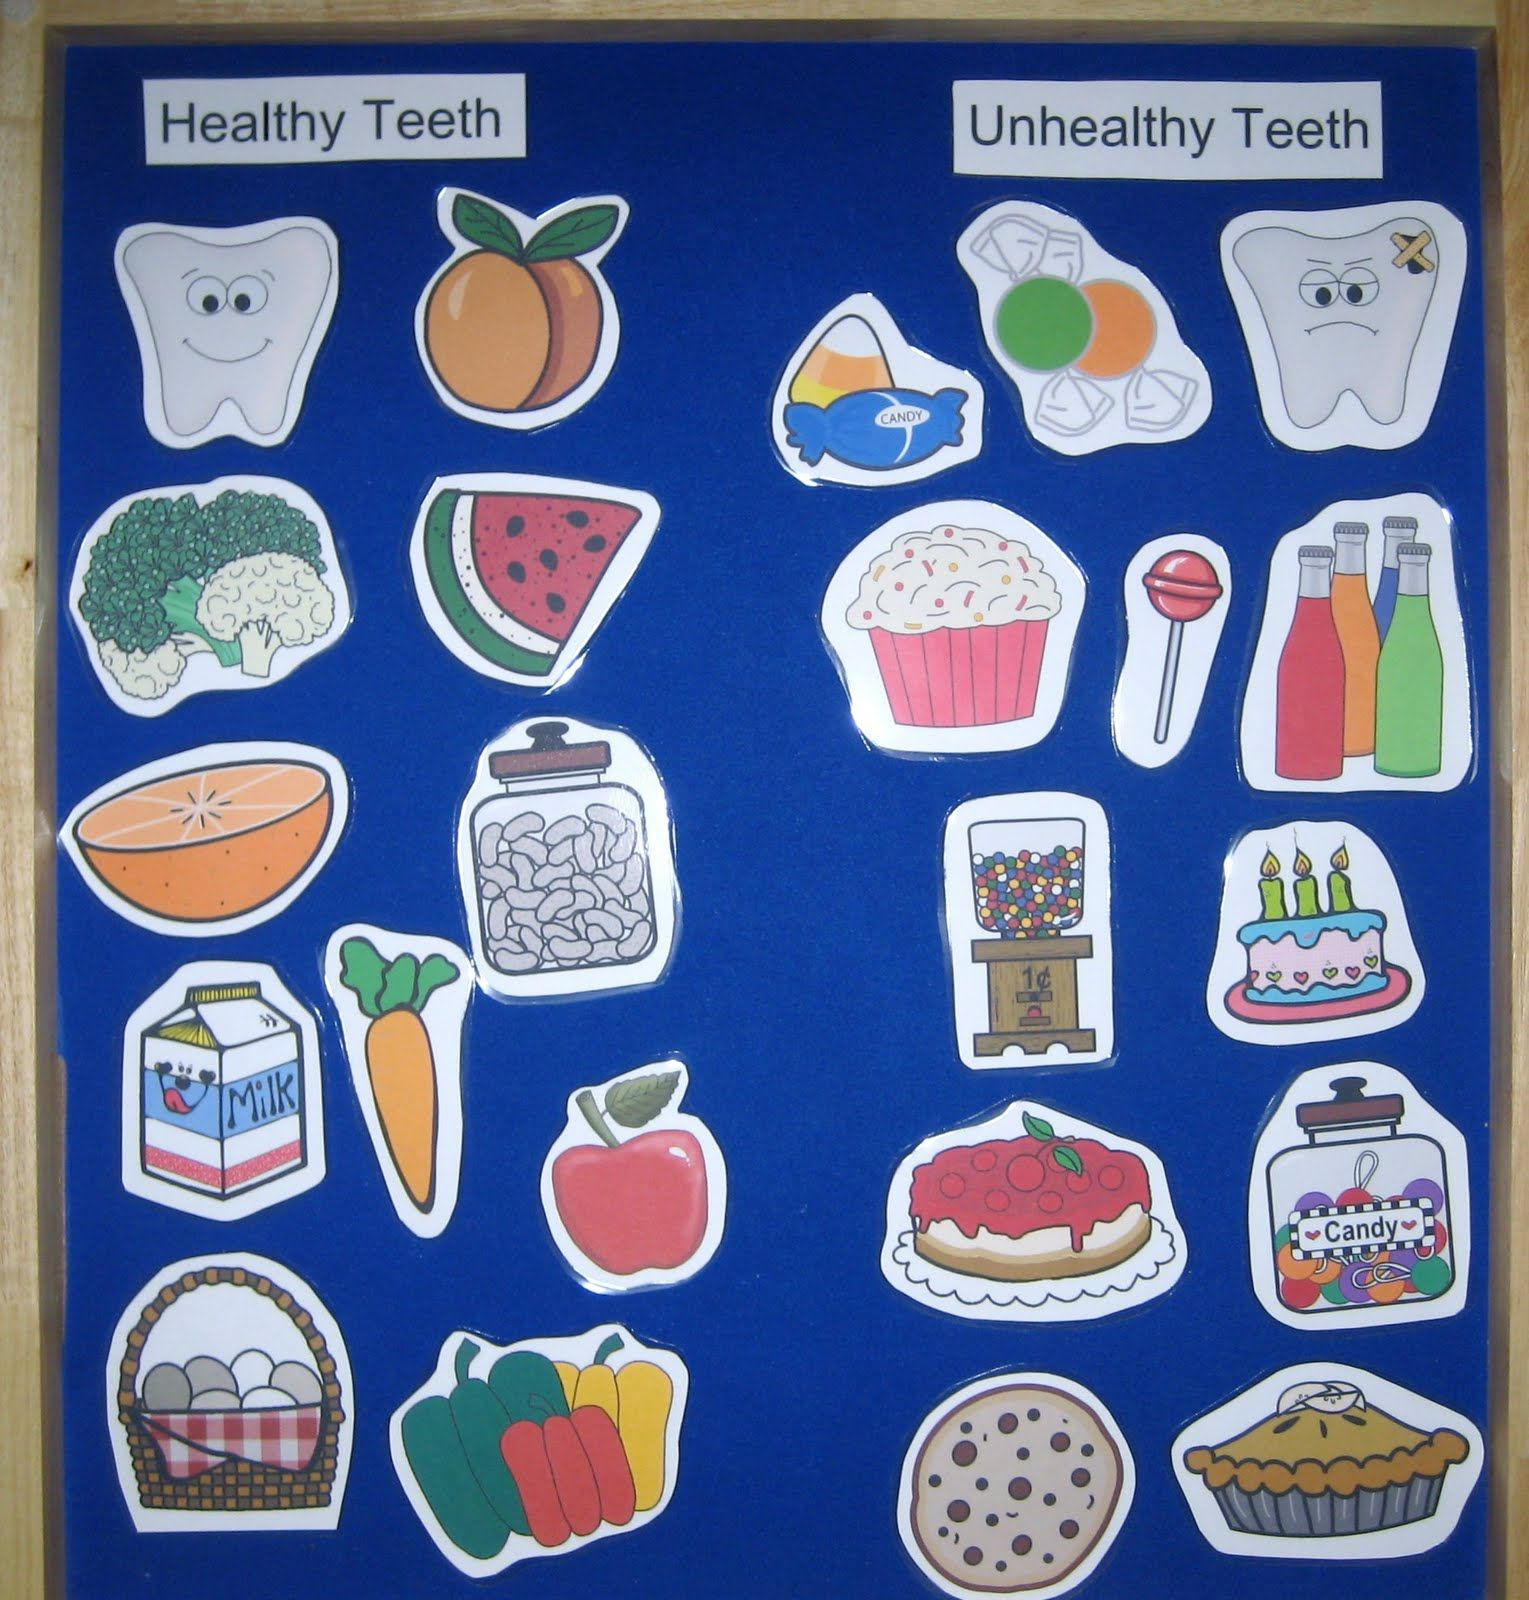 Healthy Food Vs Unhealthy Students Can Draw Picture Or Use Junk Mail To Show That Will And Not Damage Teeth The Paragraph Should Explain